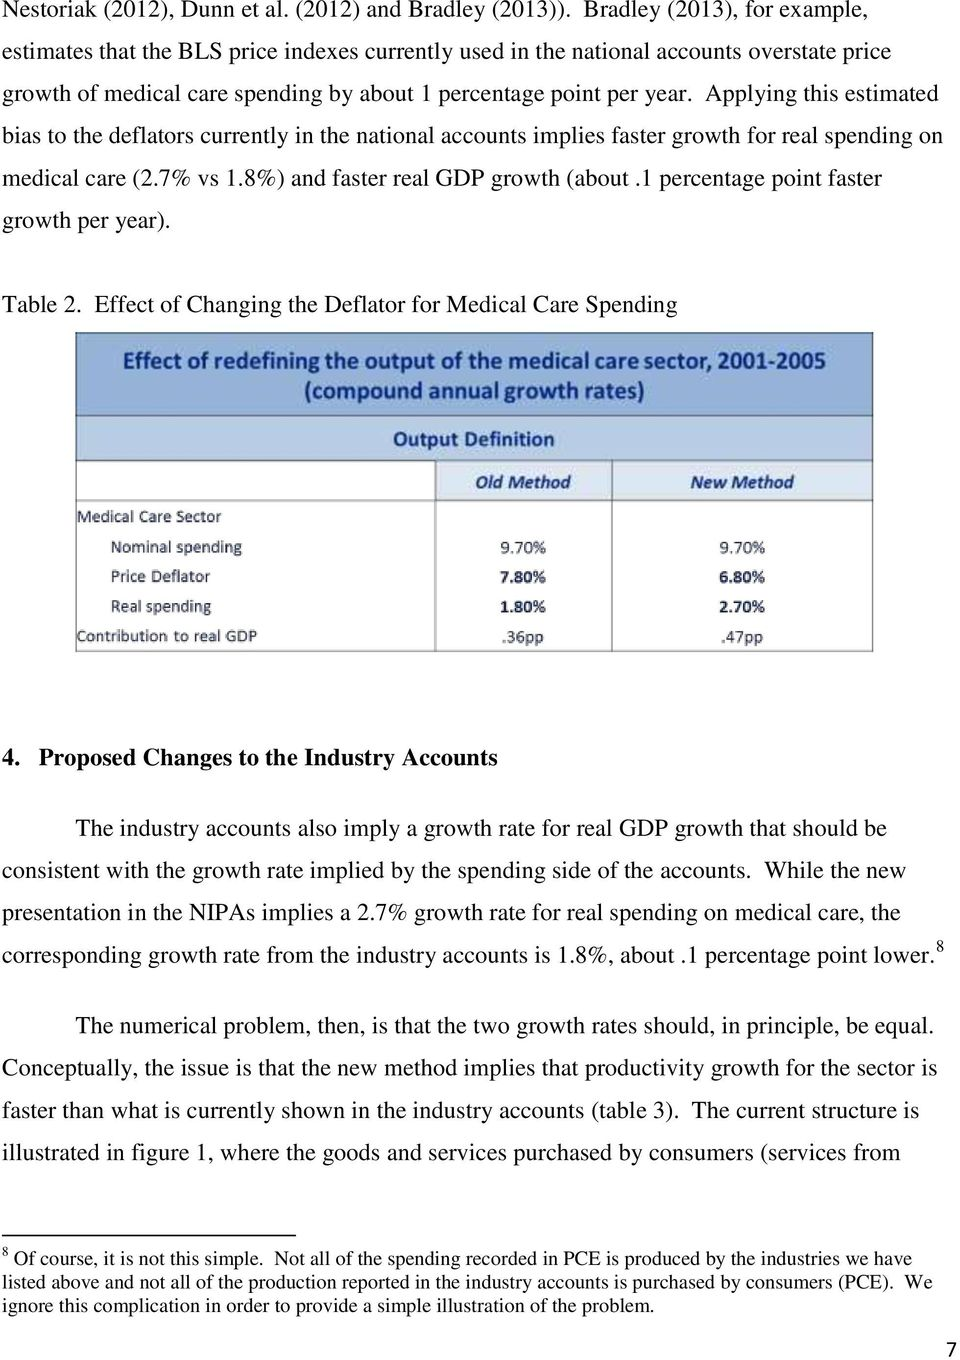 Applying this estimated bias to the deflators currently in the national accounts implies faster growth for real spending on medical care (2.7% vs 1.8%) and faster real GDP growth (about.